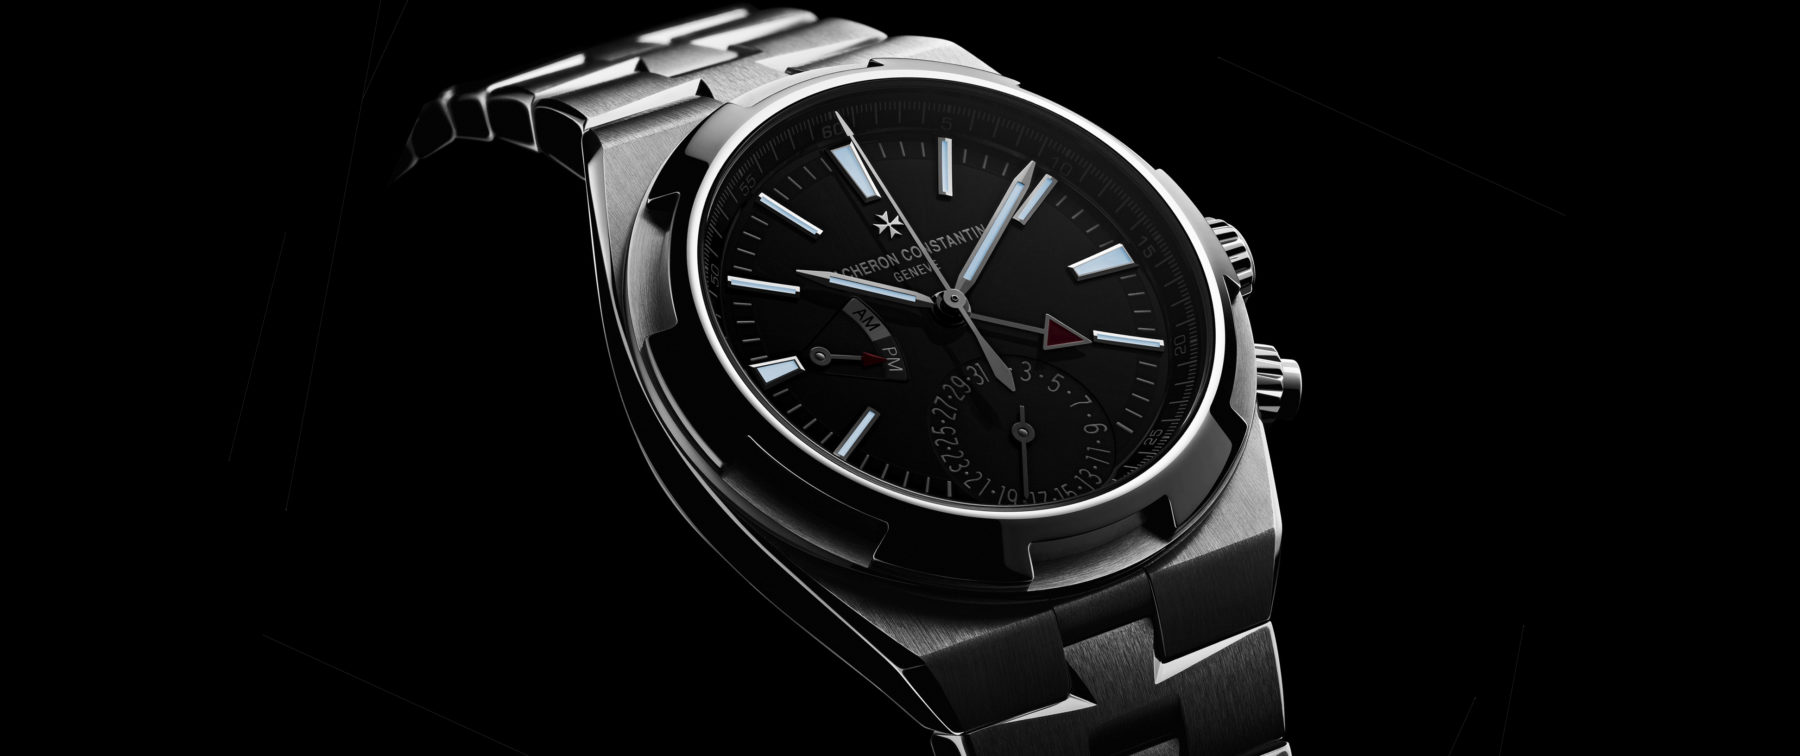 The Overseas Dual Time from Vacheron Constantin is back in black